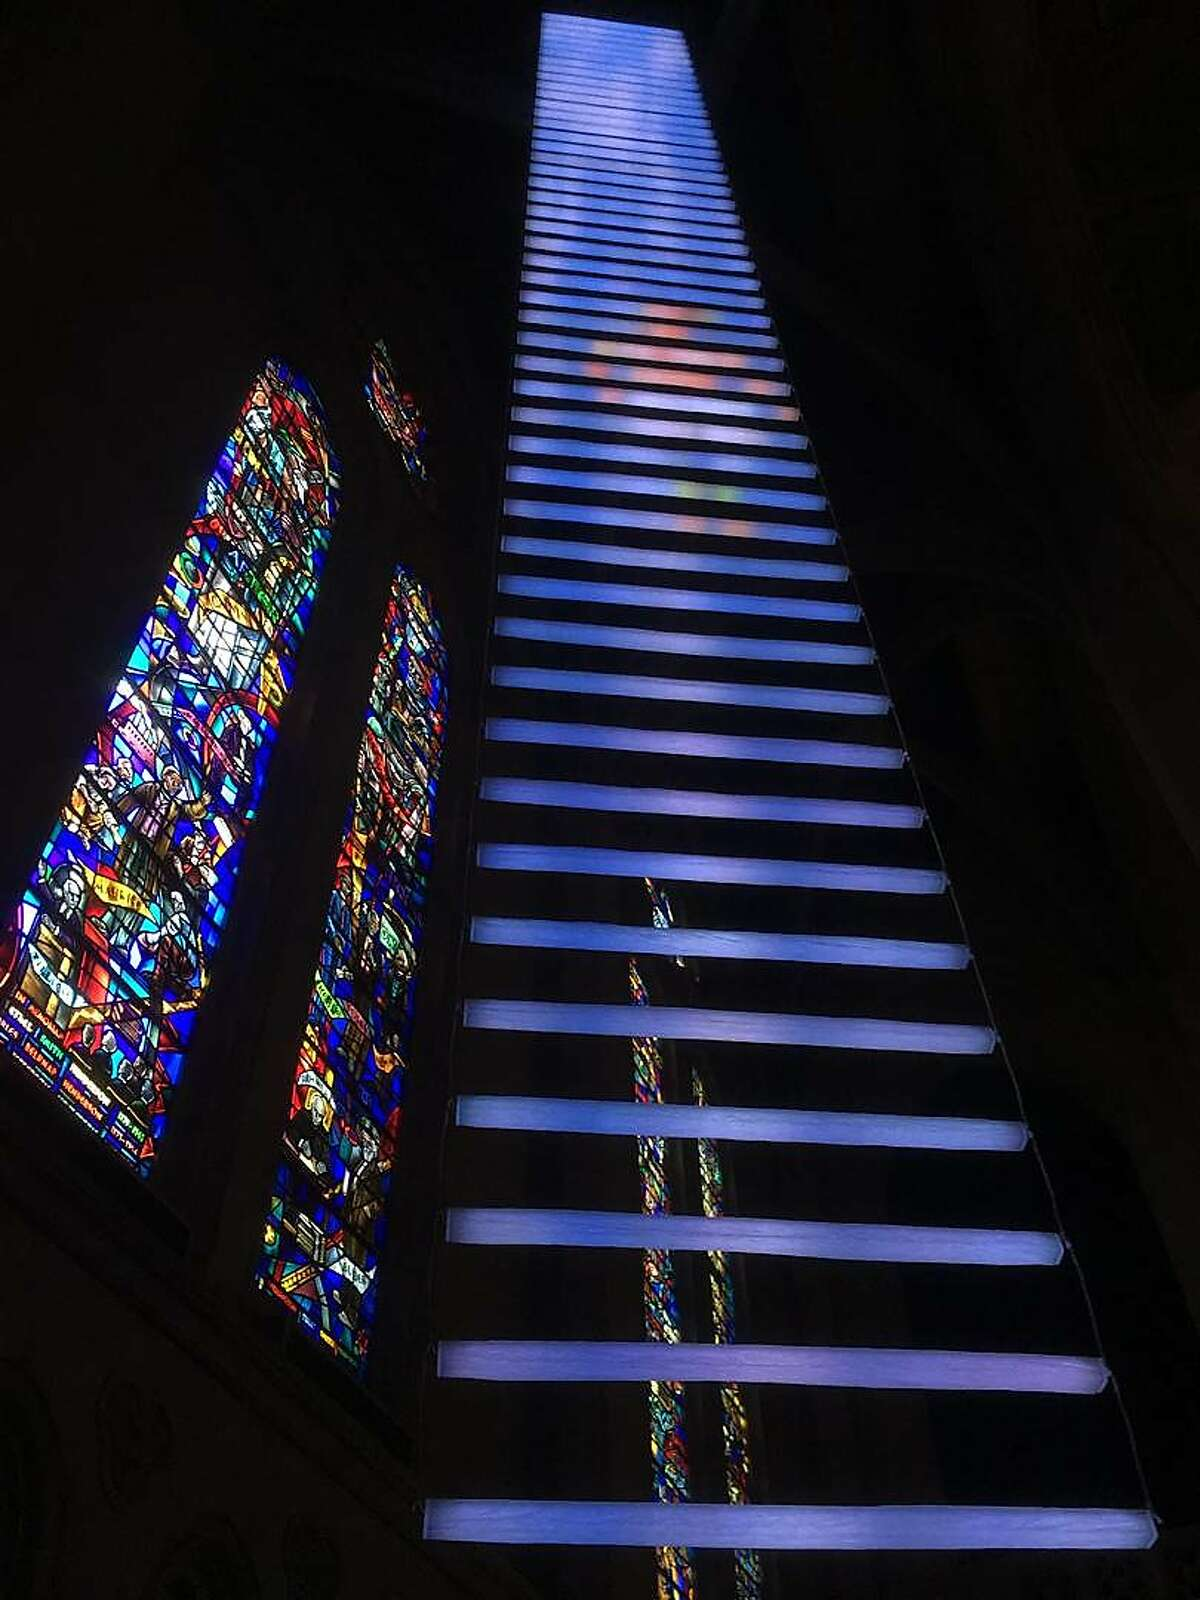 Jim Campbell and�Benjamin Bergery,��Jacob�s Dream: A Luminous Path,� a site-specific installation at Grace Cathedral